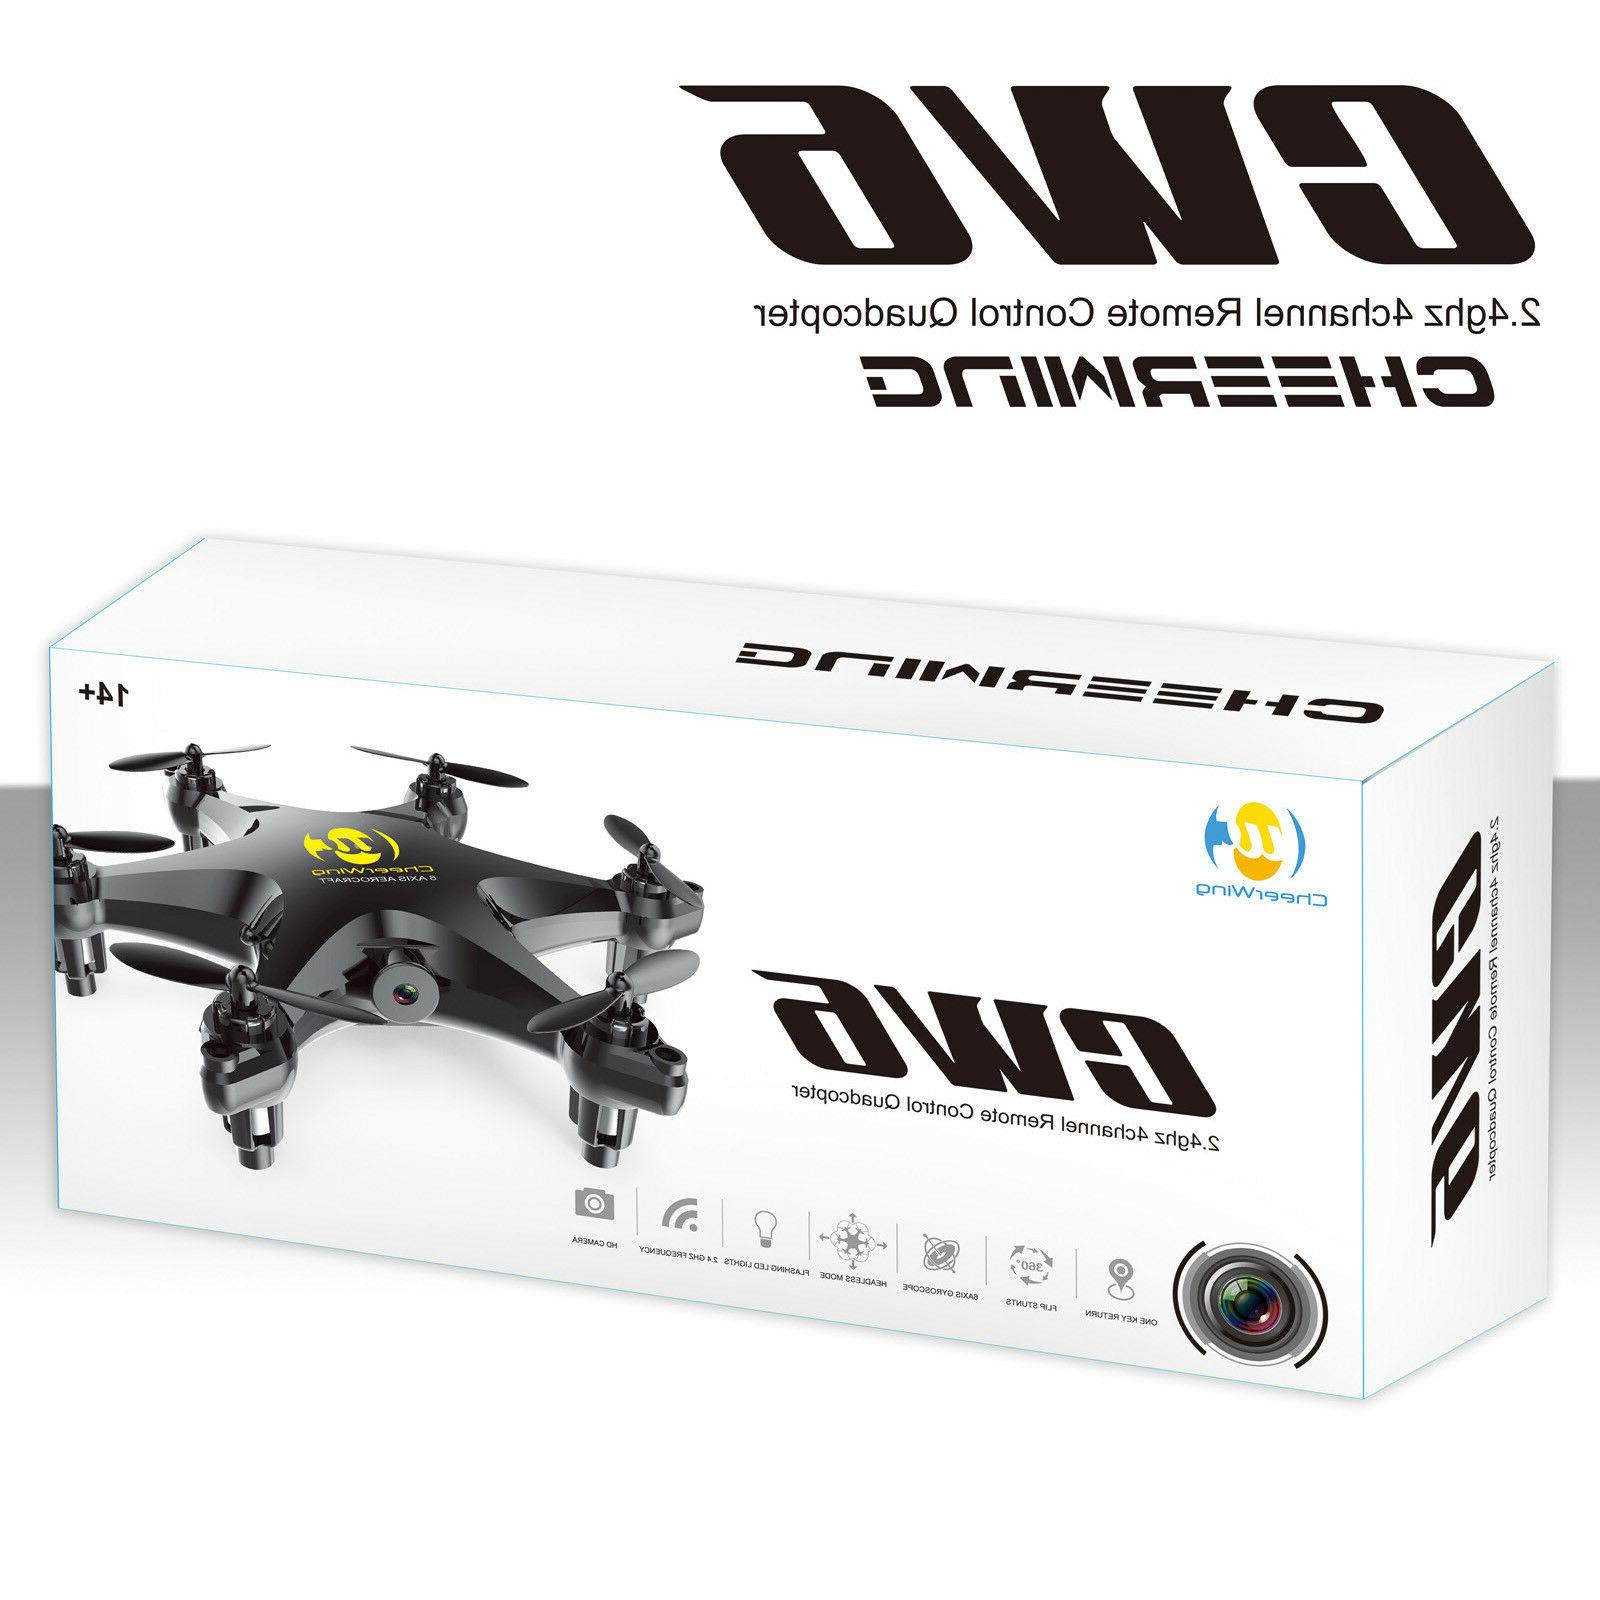 Cheerwing CW6 2.4G 6-Axis battery